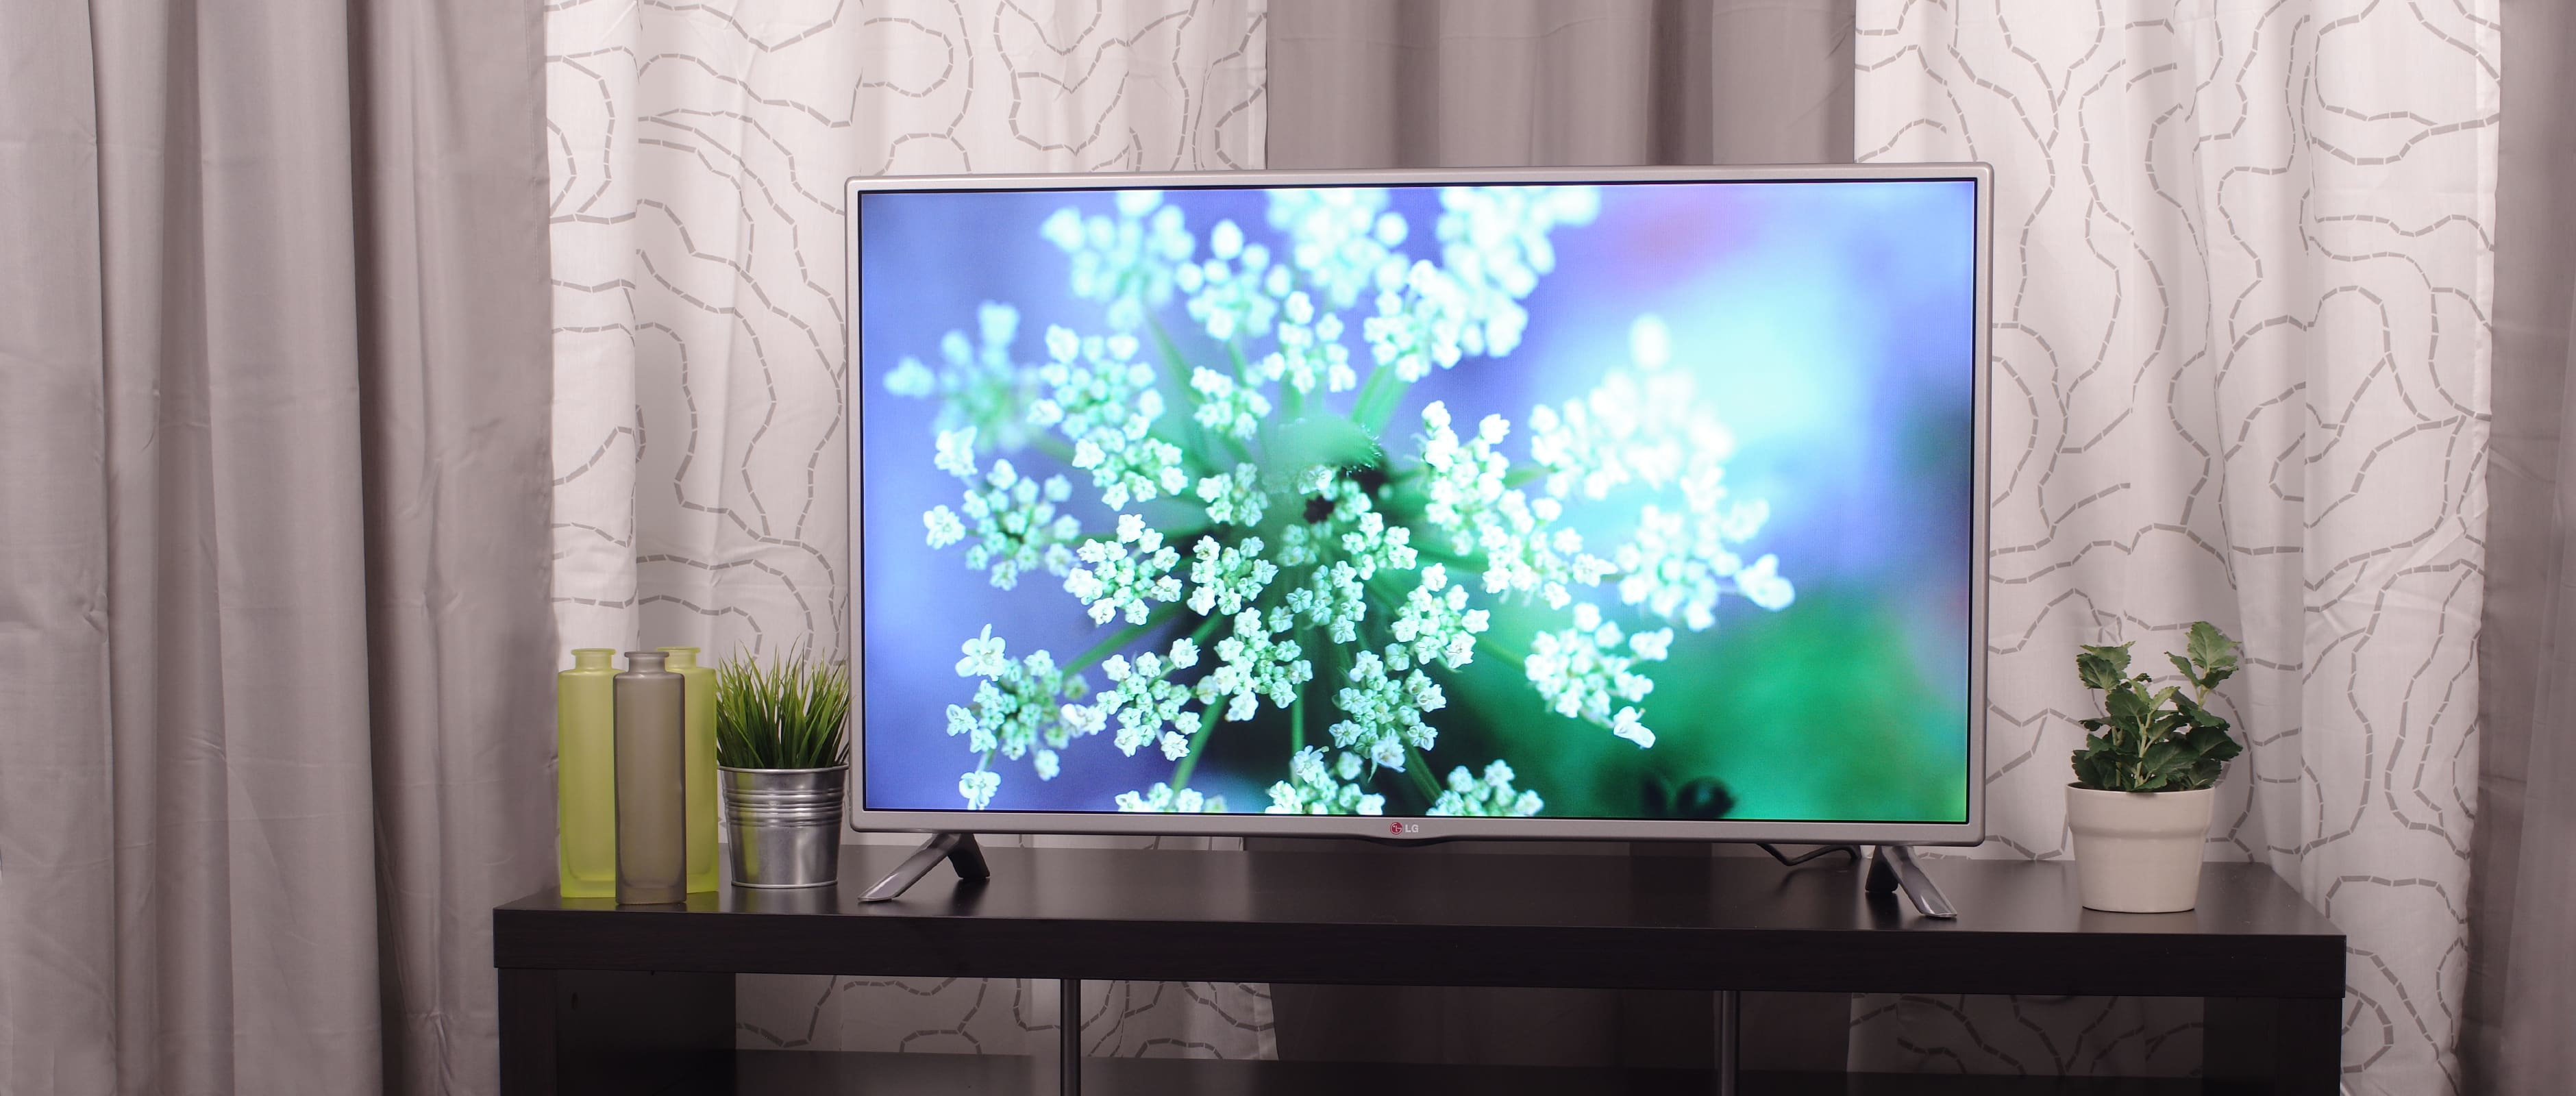 The LG 42LB5800 LED LCD TV